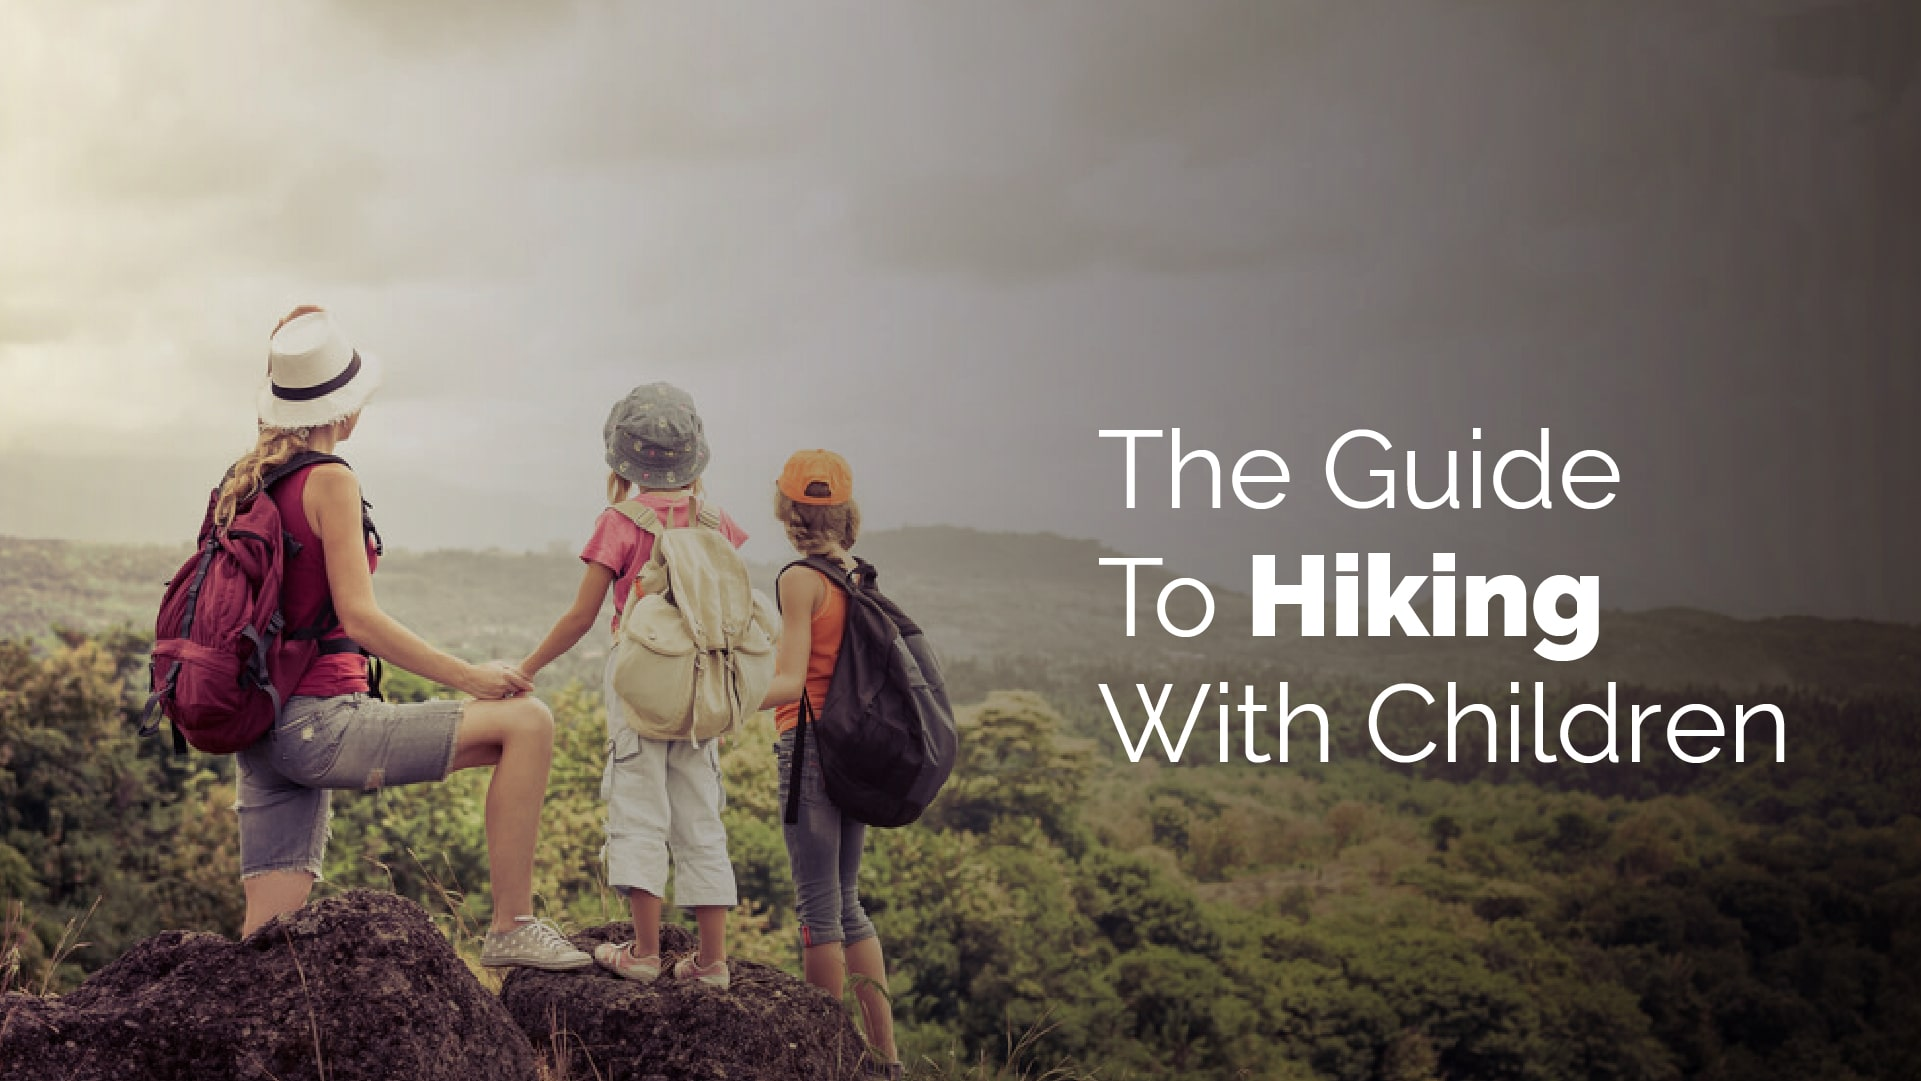 The Guide To Hiking With Children